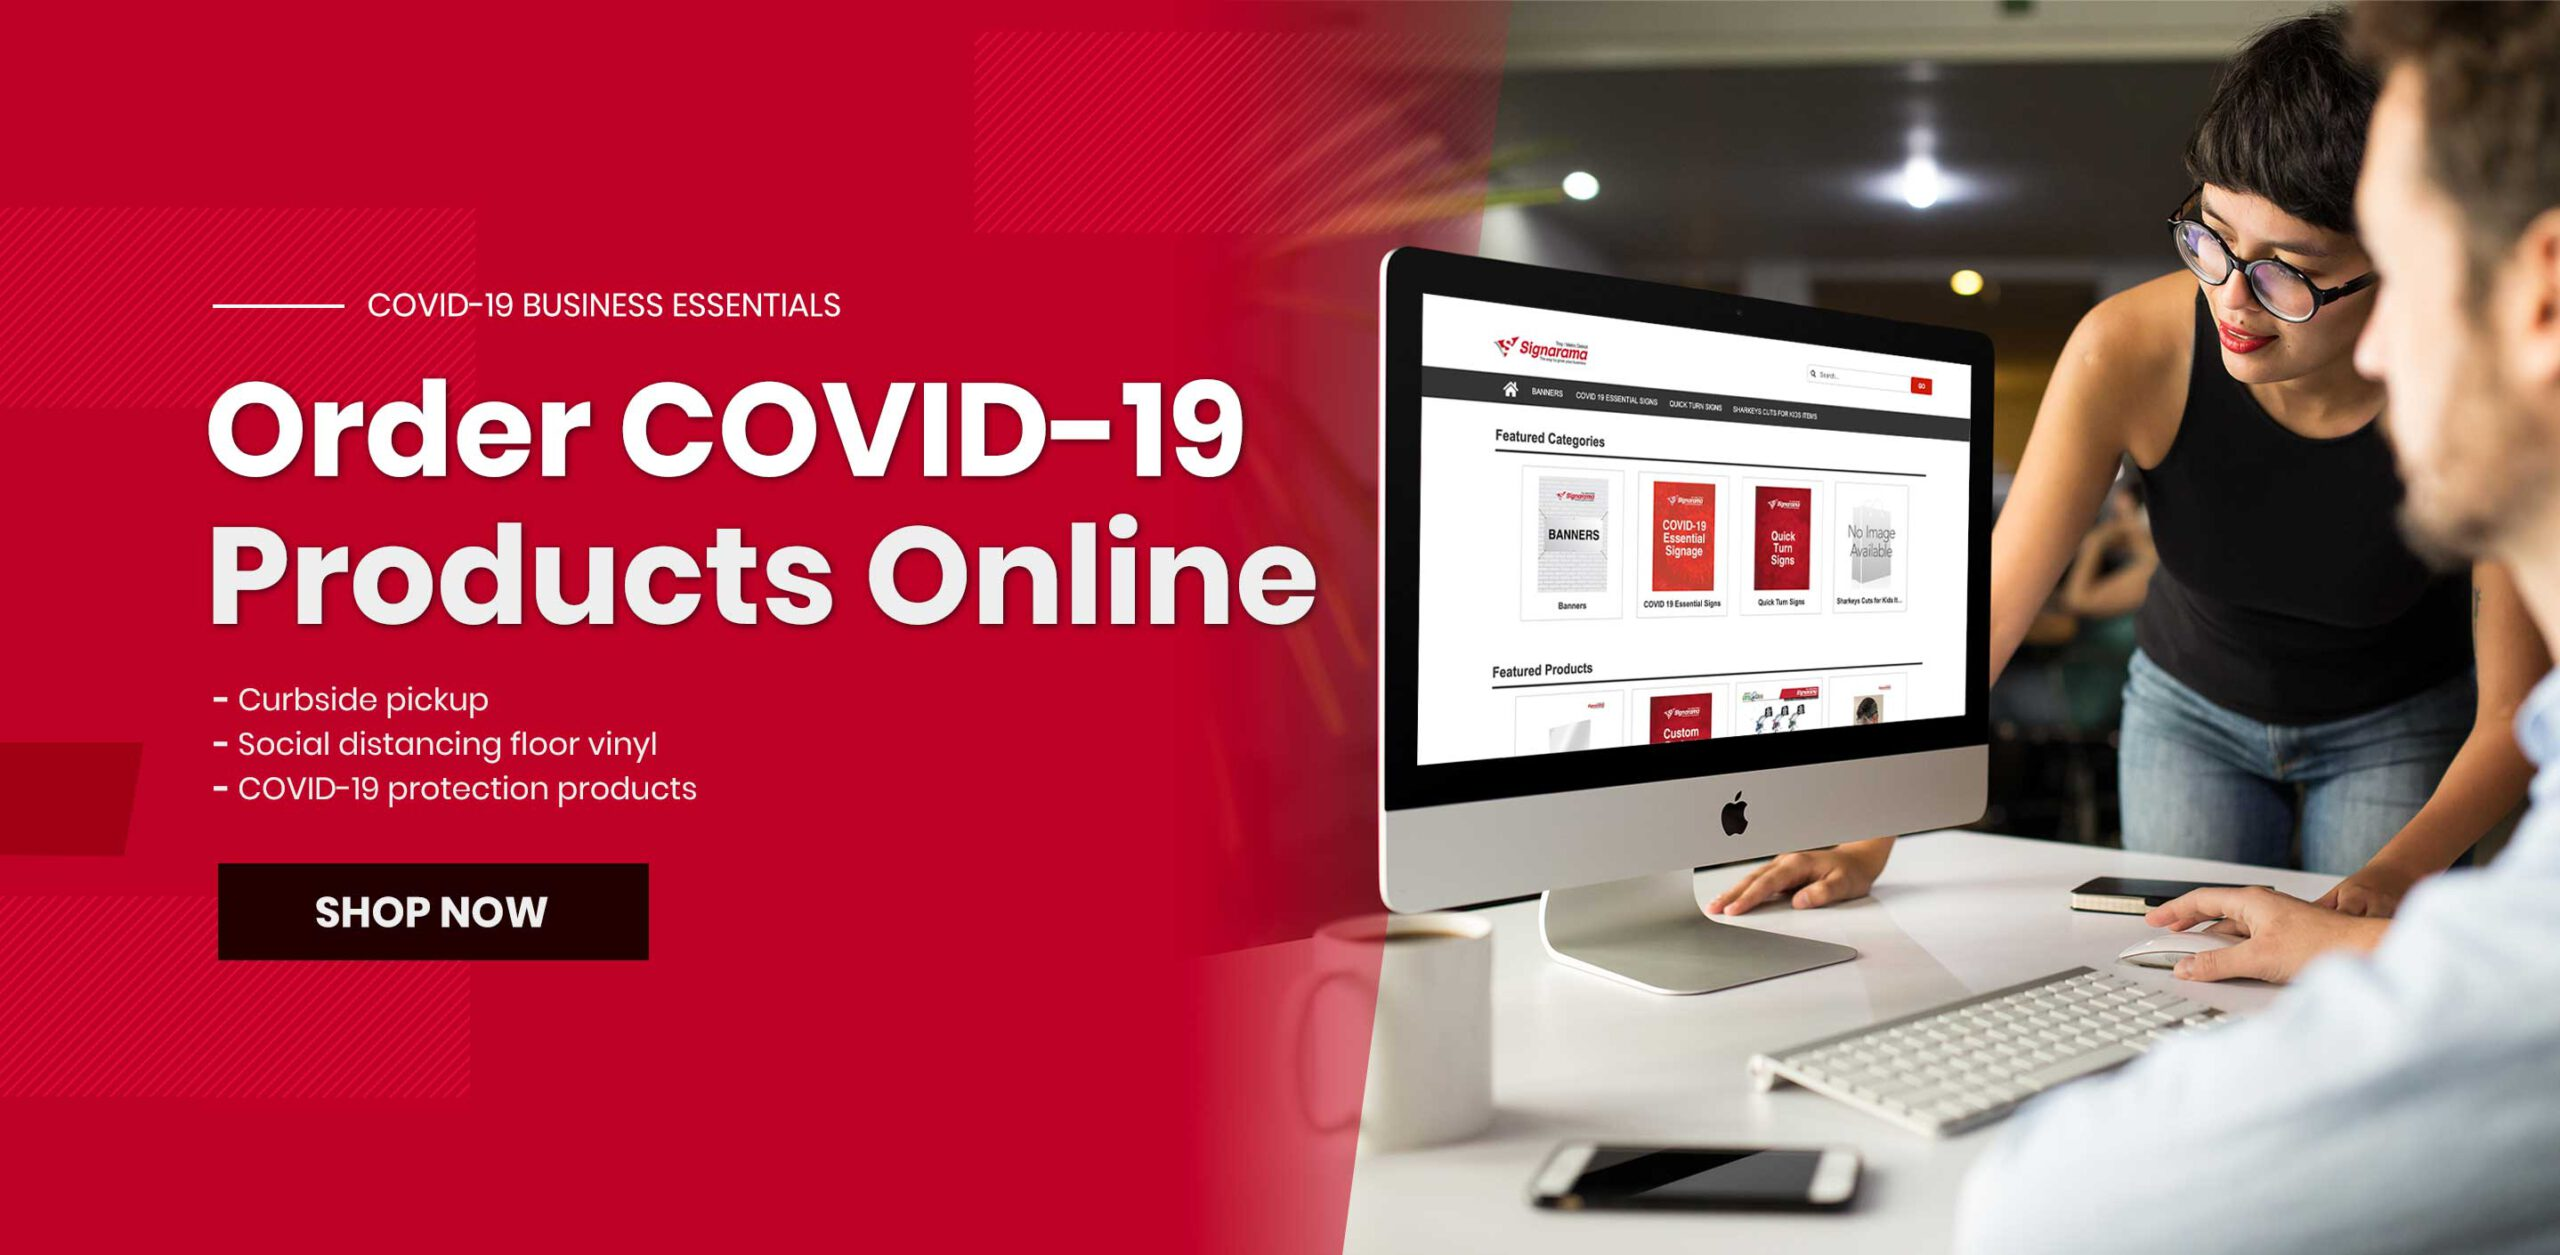 Order COVID-19 Products Online